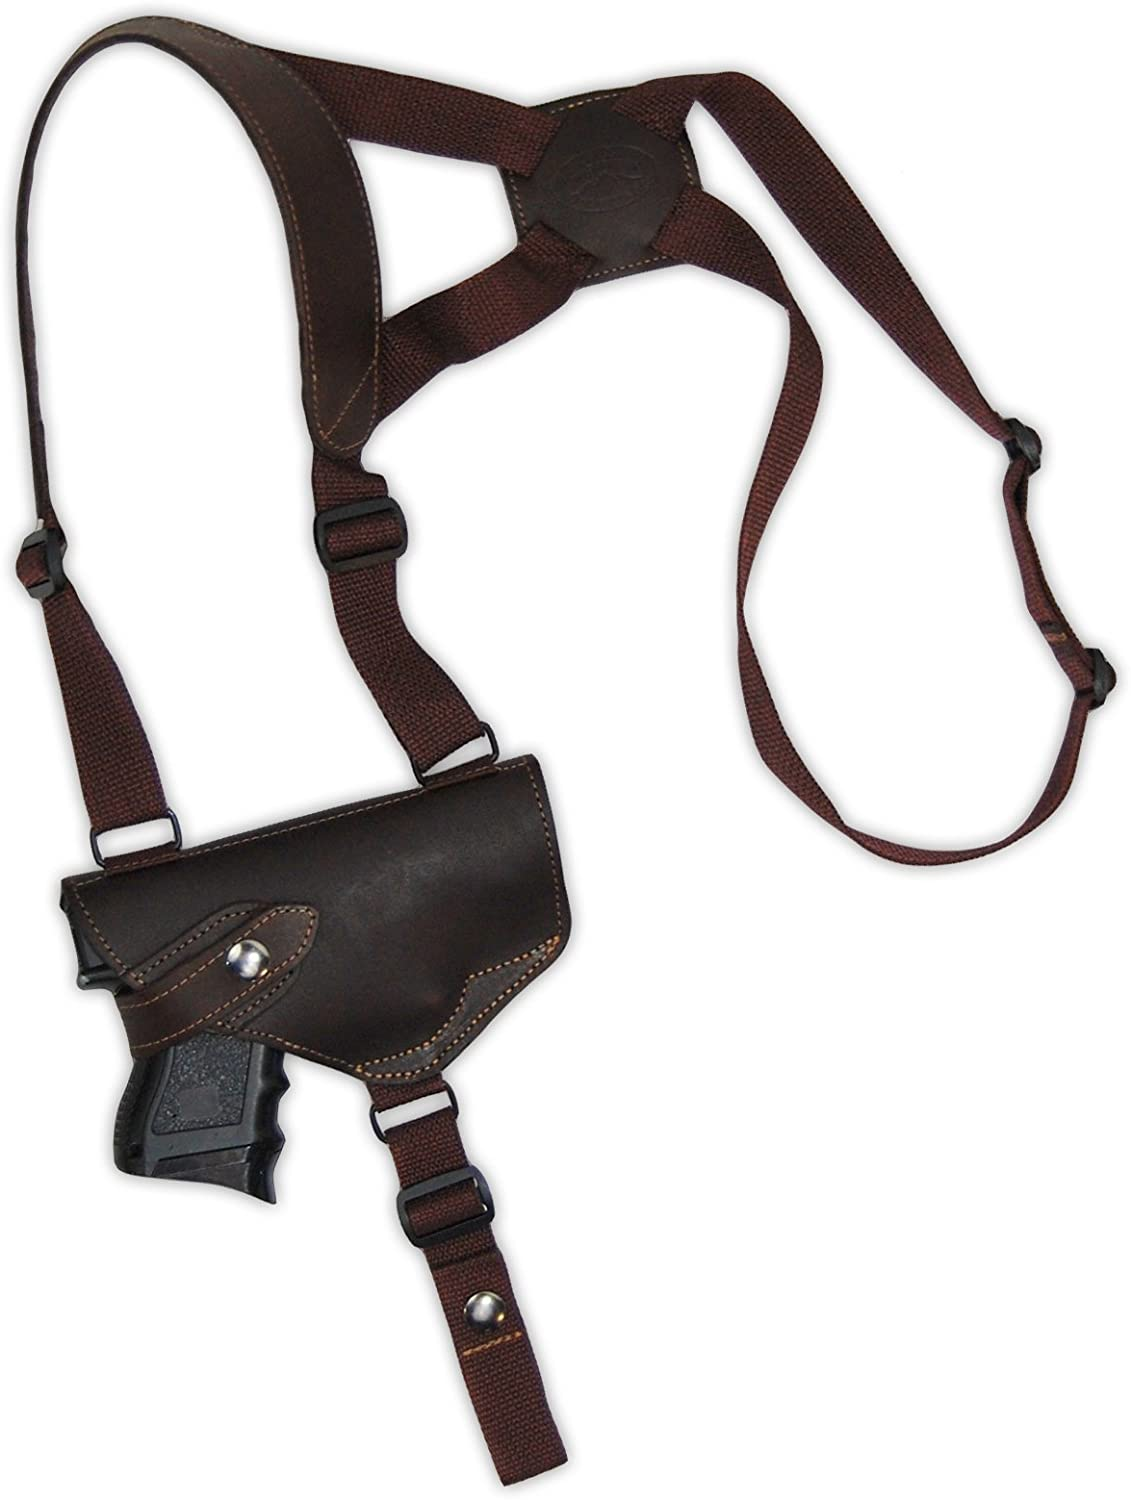 Barsony New Brown Leather Shoulder Holster for Compact 9mm 40 45 Pistols